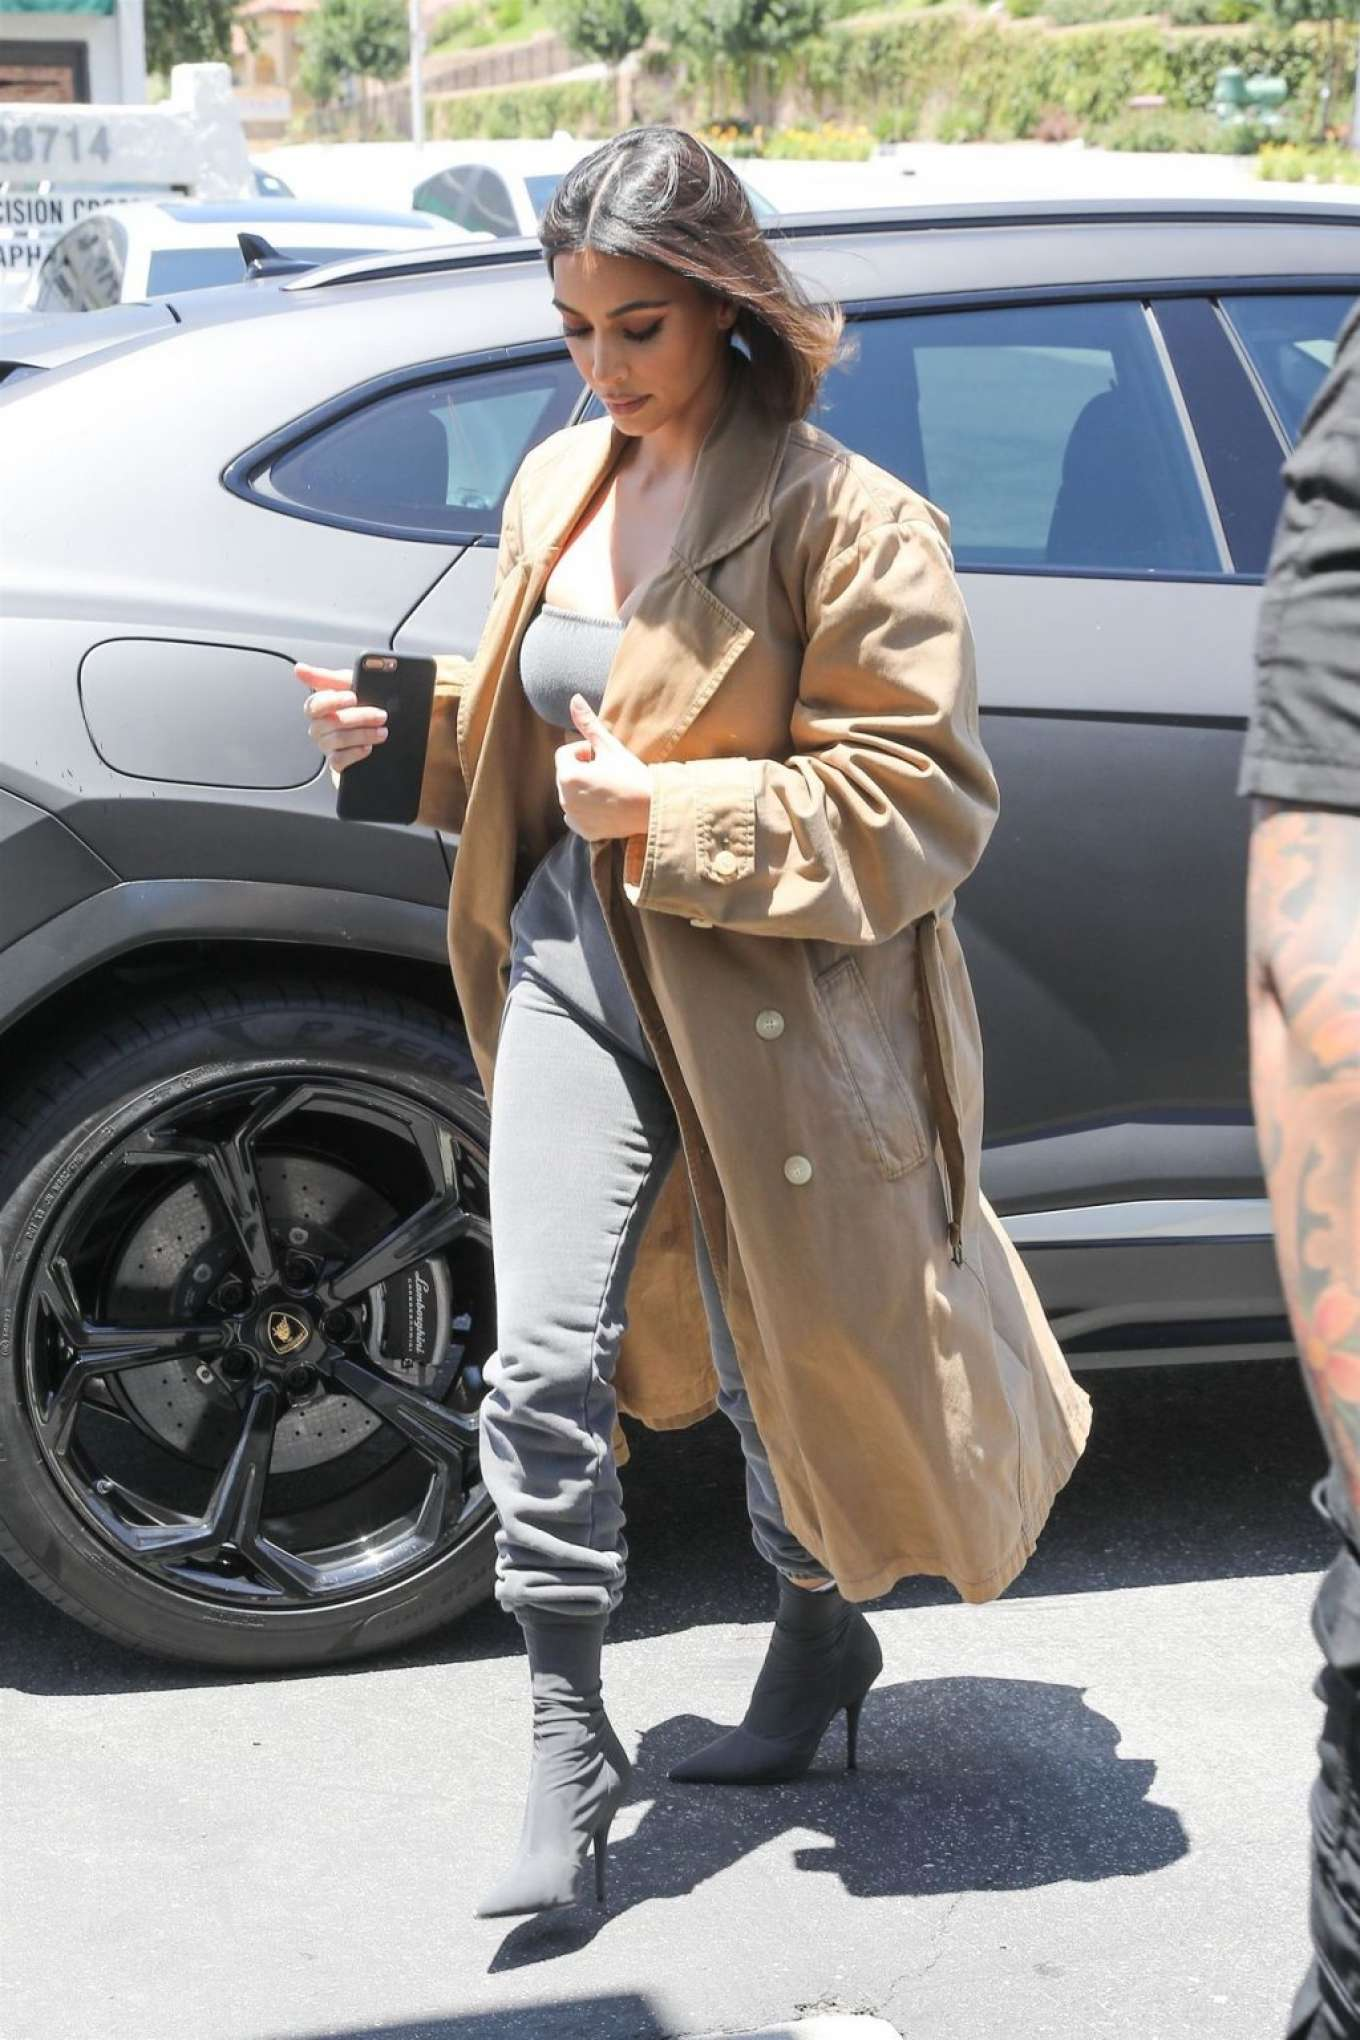 Kim Kardashian rocking a Oversized beige button front suede trench coat with a suede fabric, extra long sleeves, peak lapel collar and button front